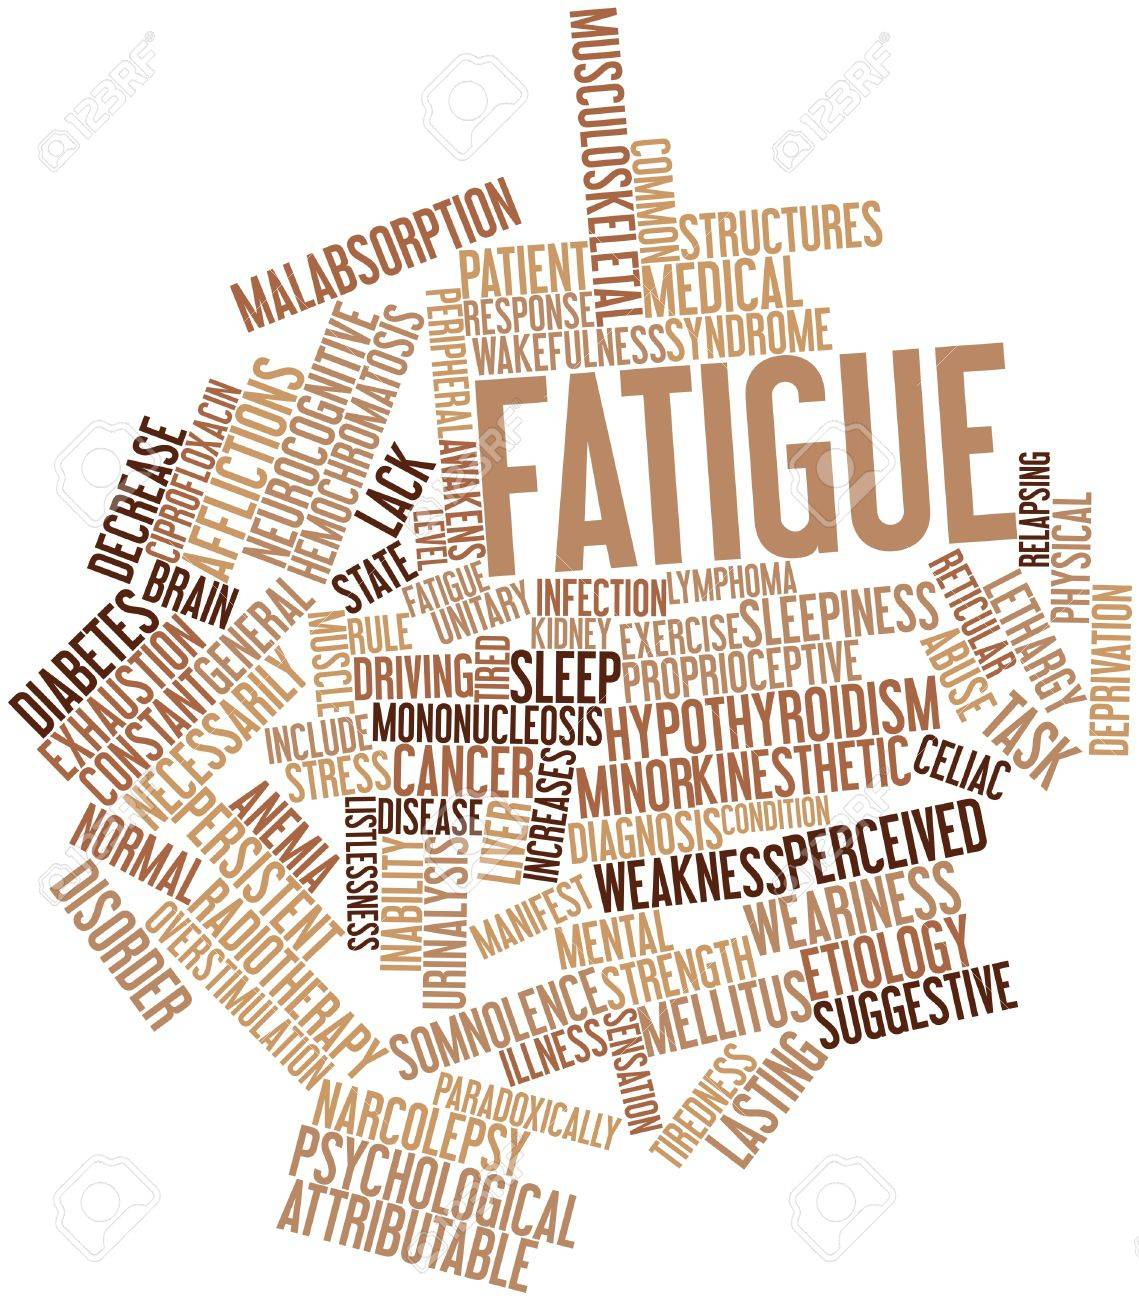 Abstract word cloud for Fatigue with related tags and terms Stock Photo - 16720756